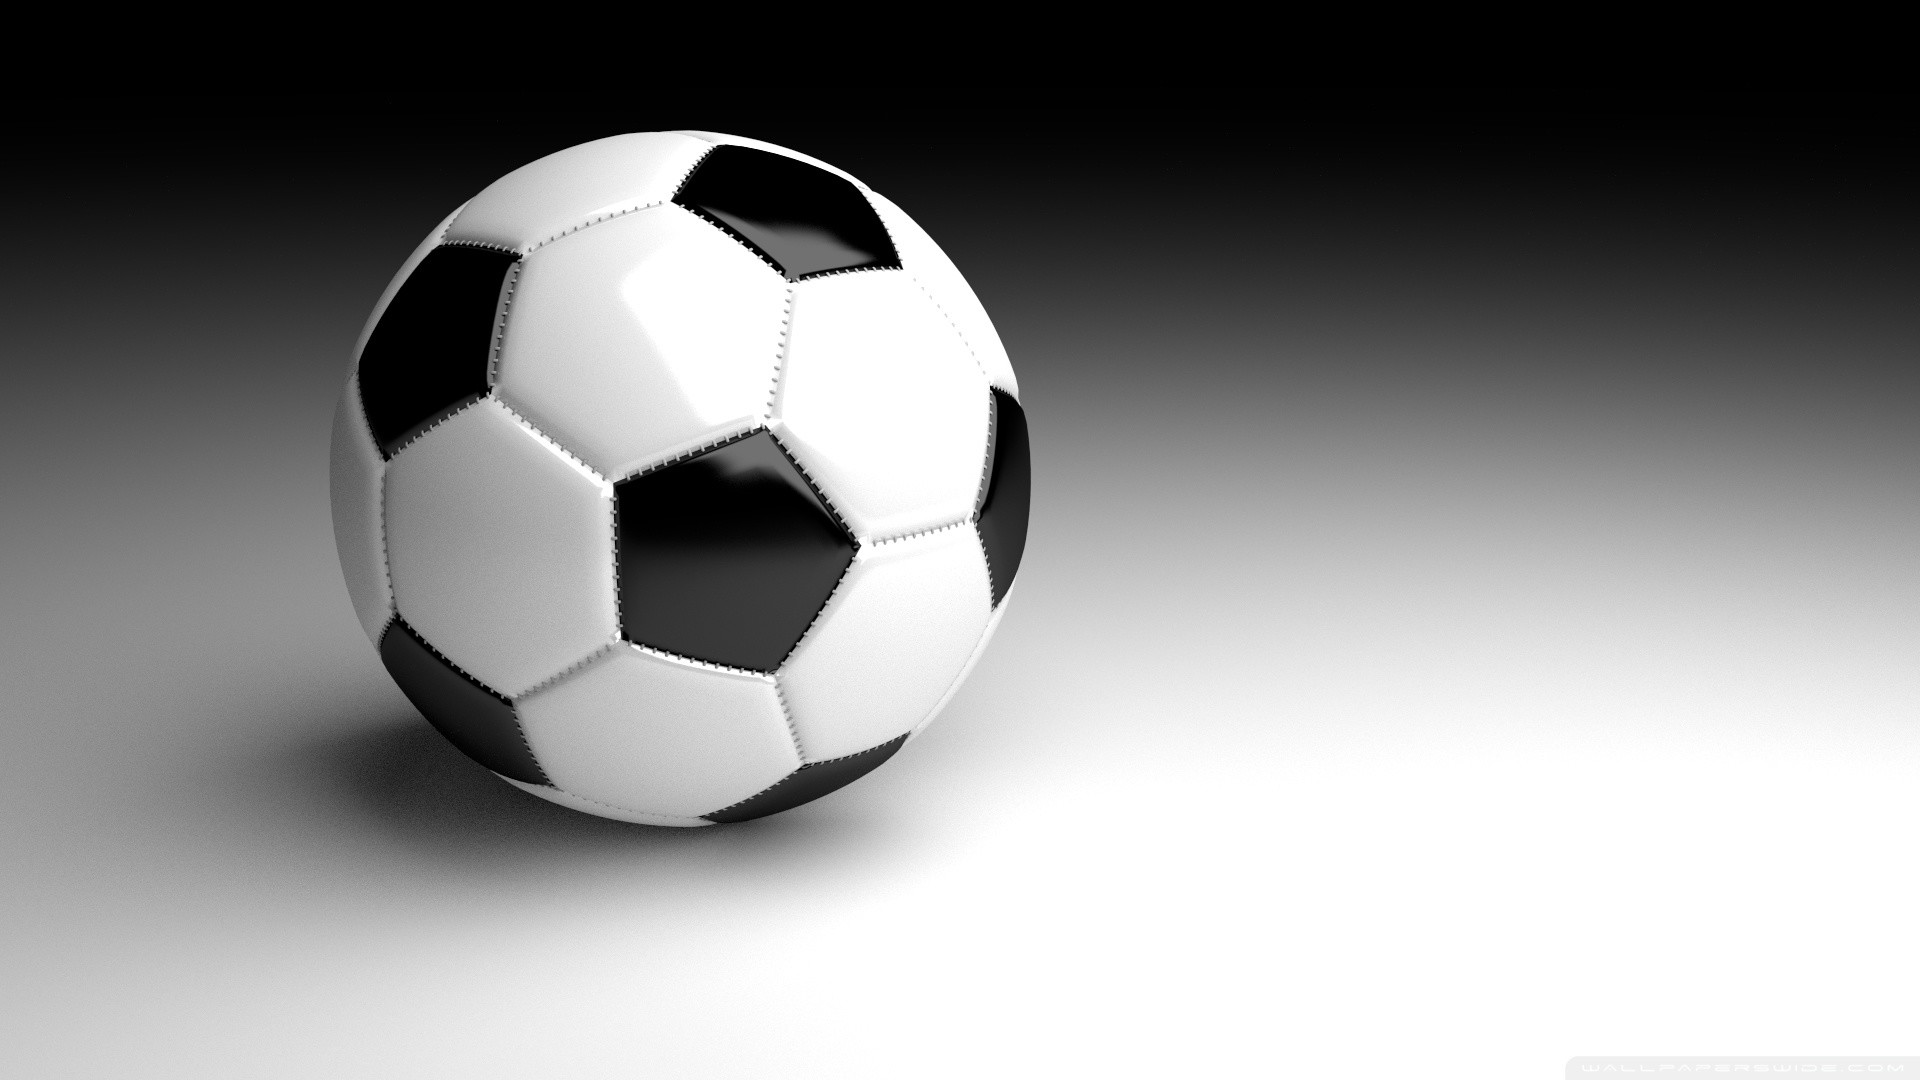 Football Hd Wallpapers 1080p 83 Images